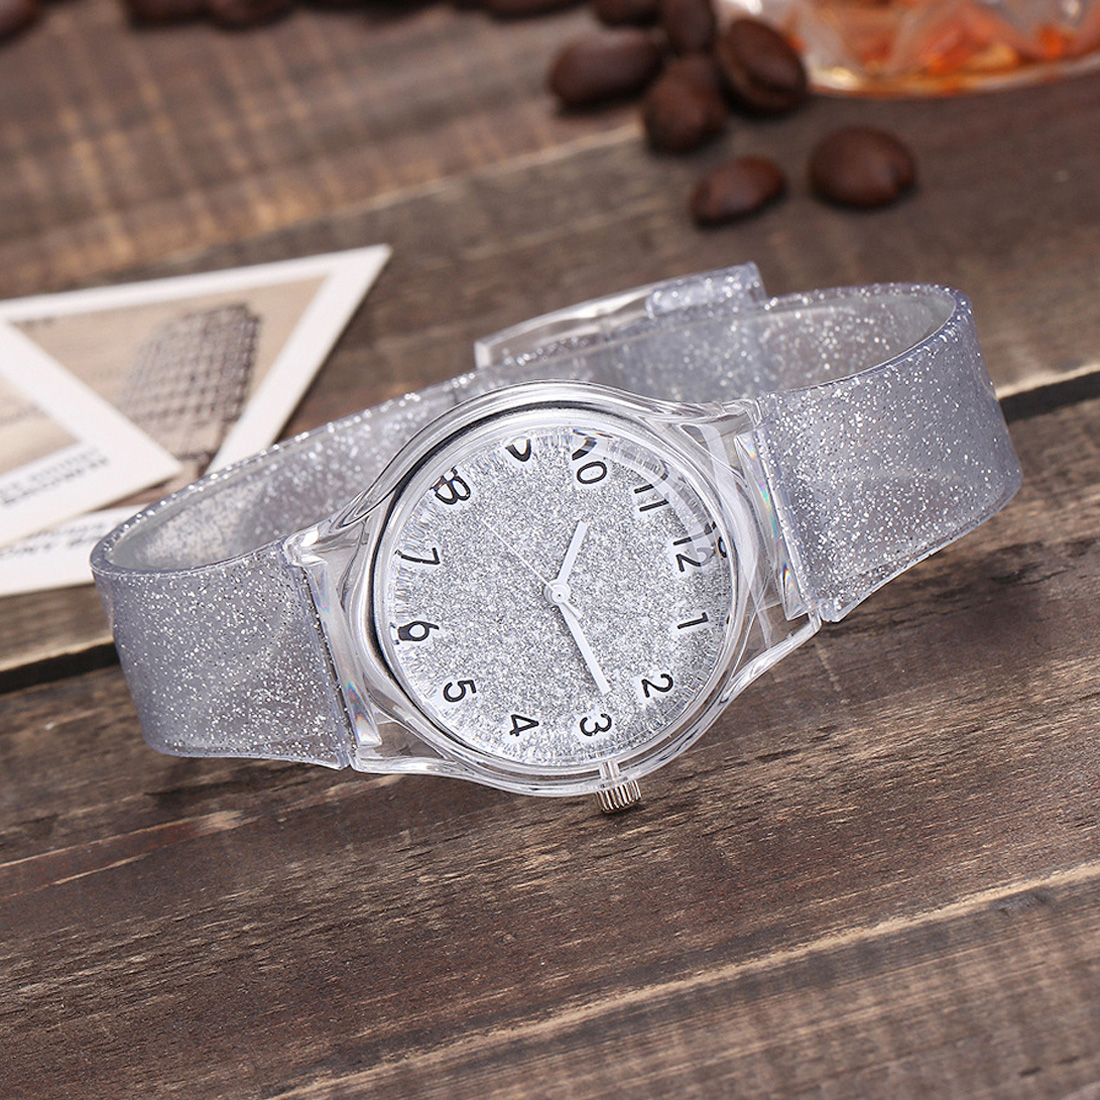 Watches Women Fashion Silicone Transparent Plastic women watches cute ladies dress Watch Gift Hot sale relojes mujer